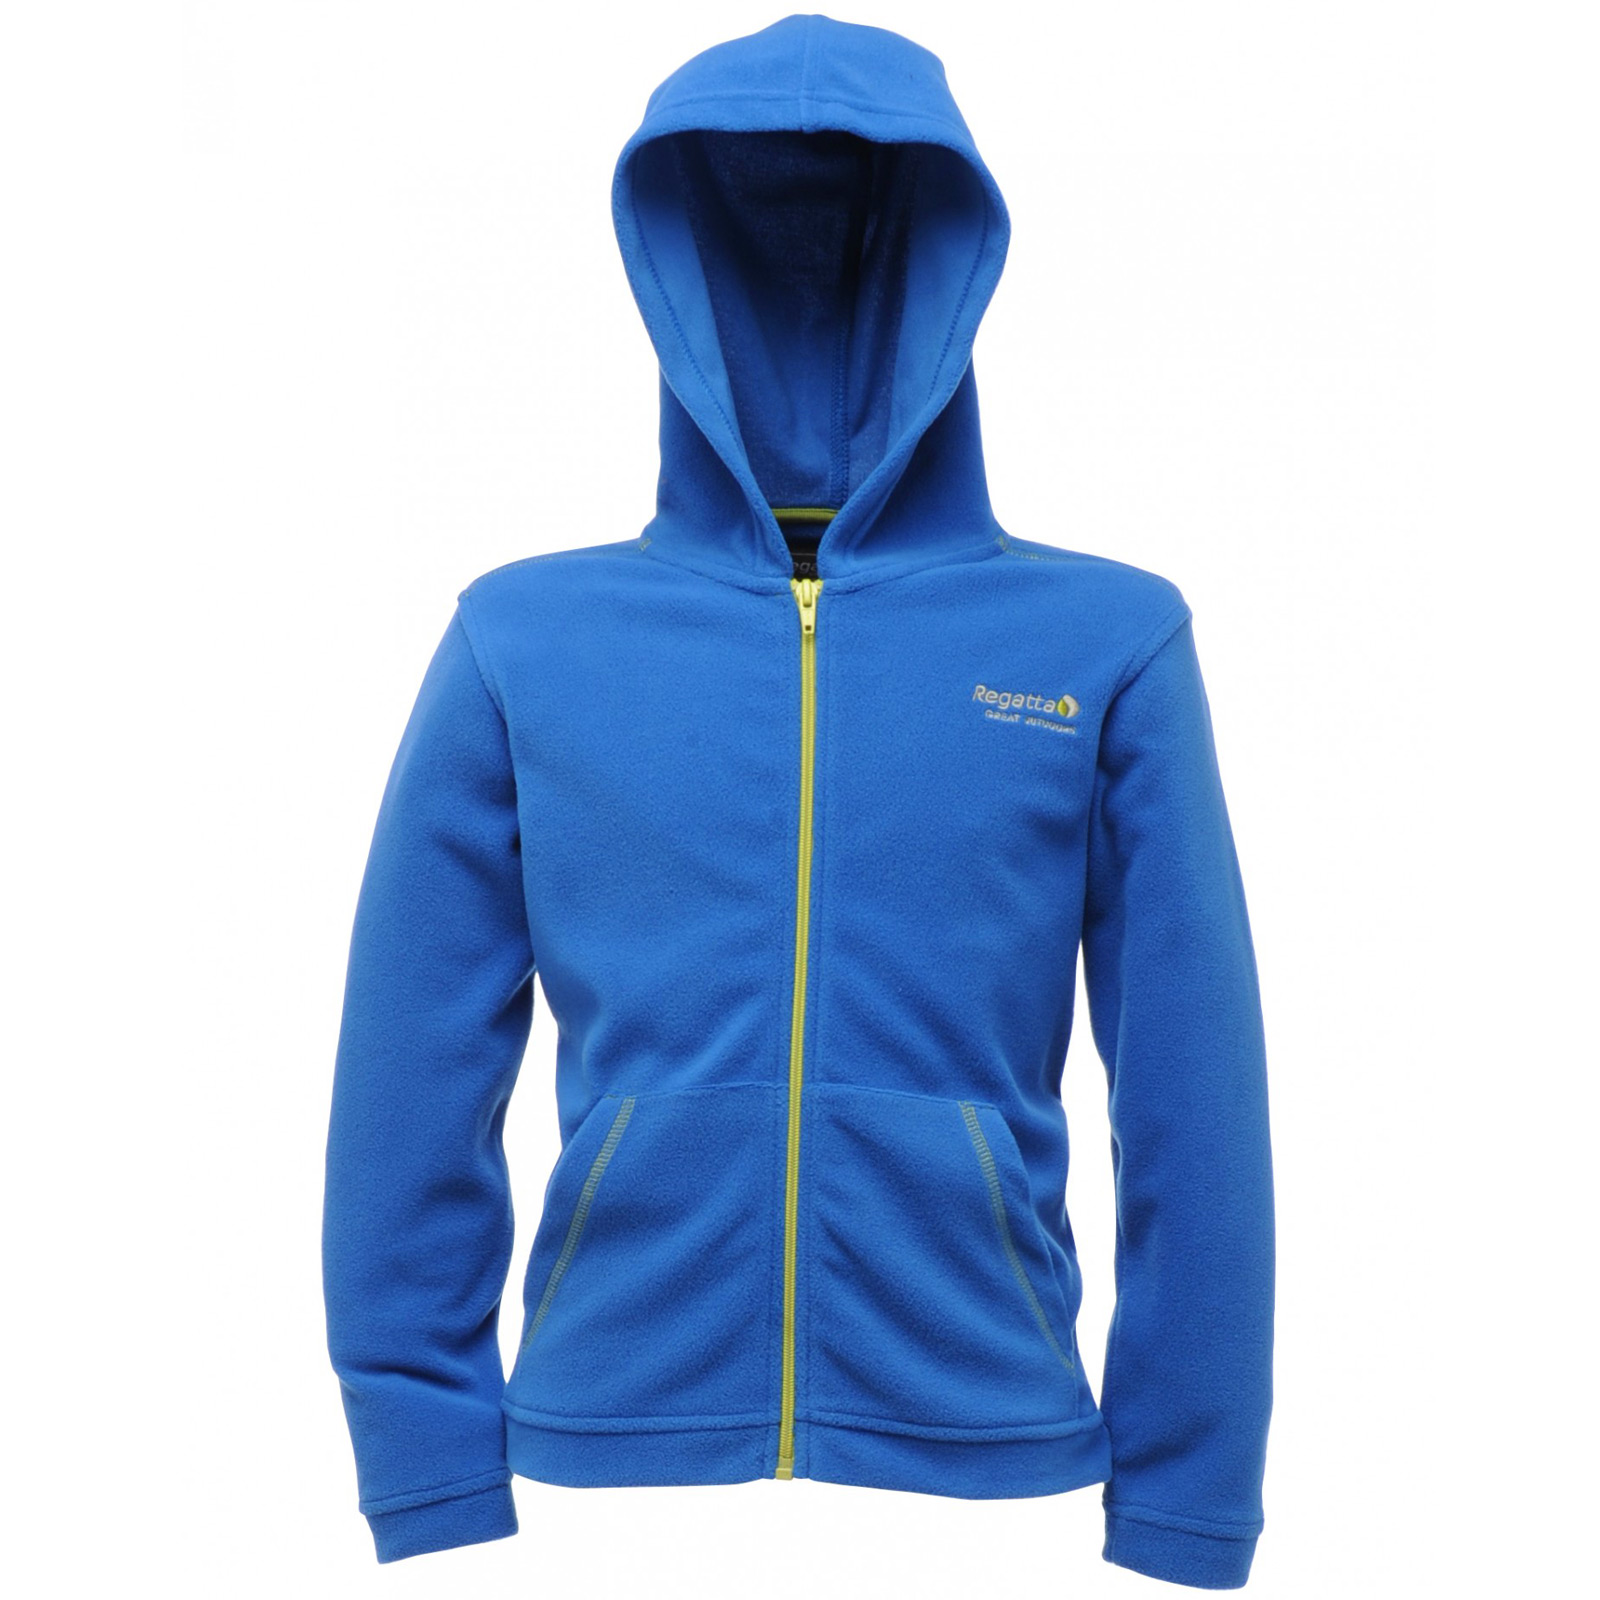 Regatta-Childrens-Chad-Fleece-Hooded-Jacket-Zip-Up-Top-Outdoor-Wear-Kids-Hoodie